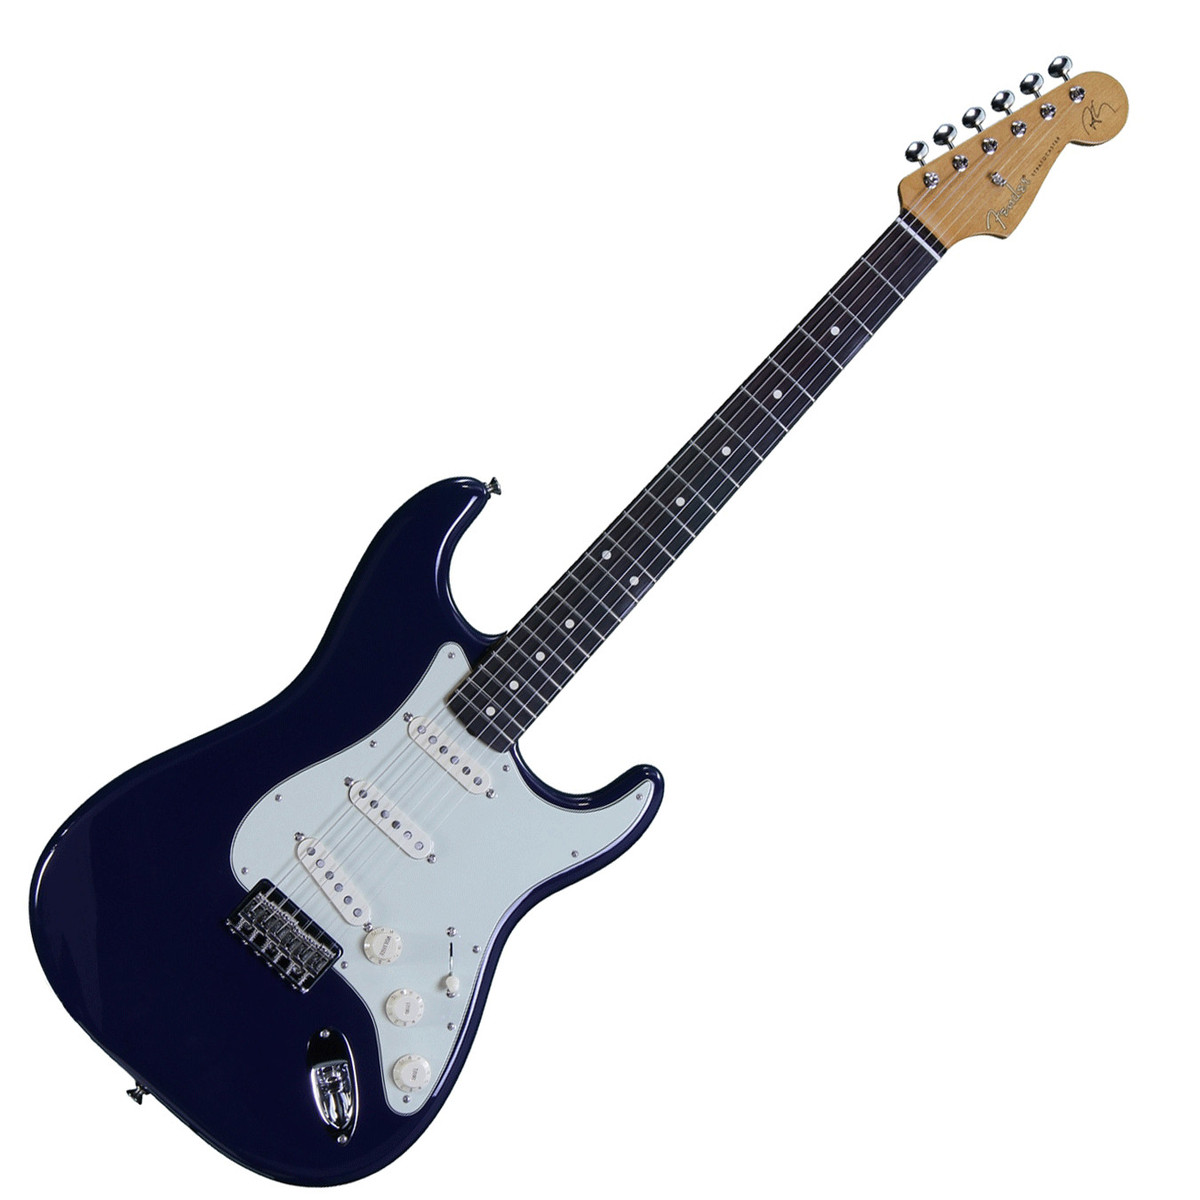 disc fender robert cray stratocaster electric guitar velvet gear4music. Black Bedroom Furniture Sets. Home Design Ideas